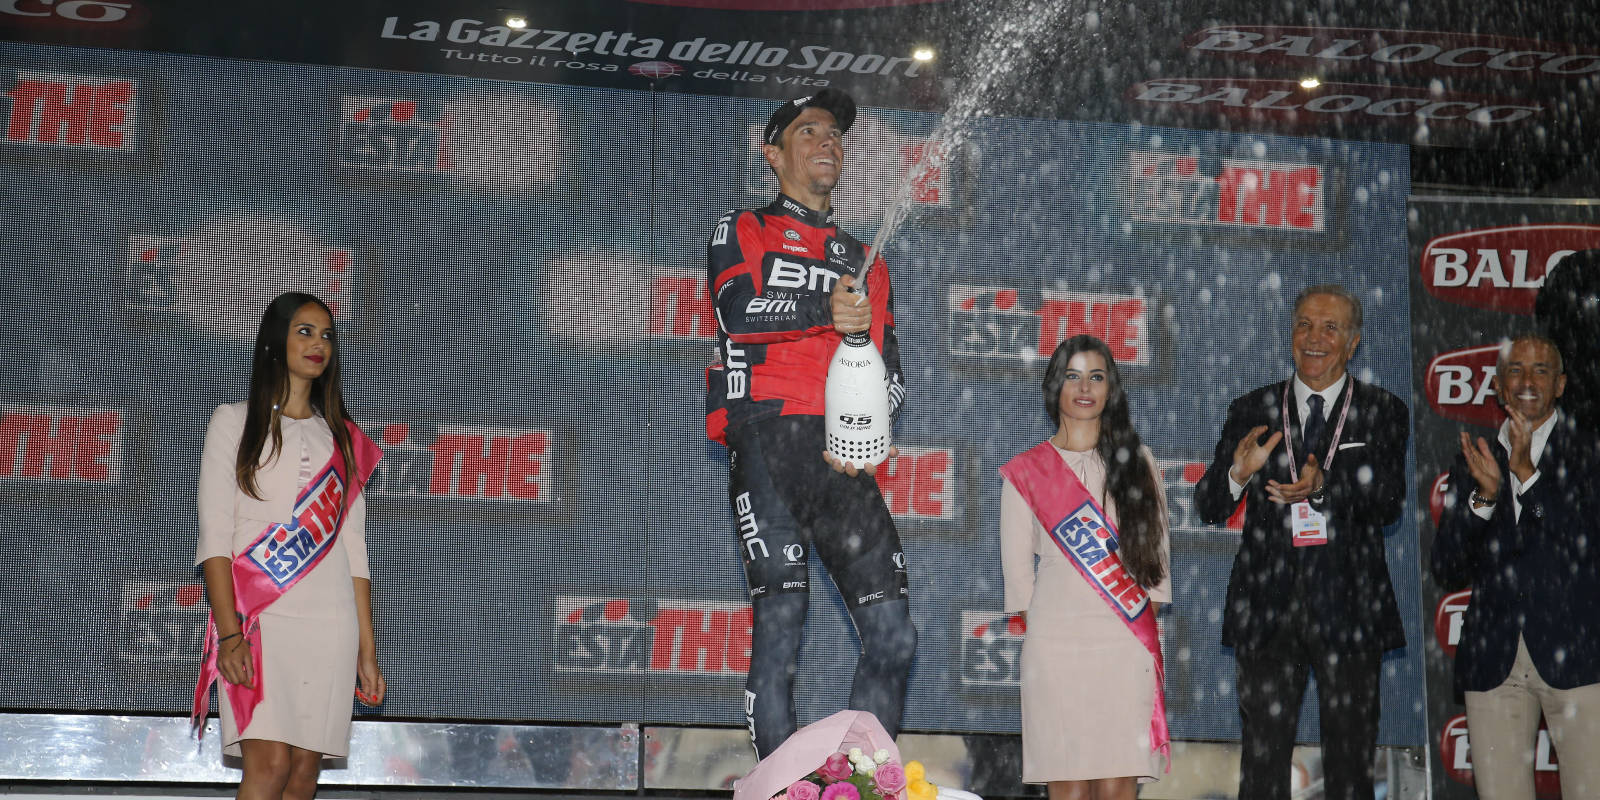 2015 giro d'italia bmc racing champagne spray podium win celebration victory philippe gilbert